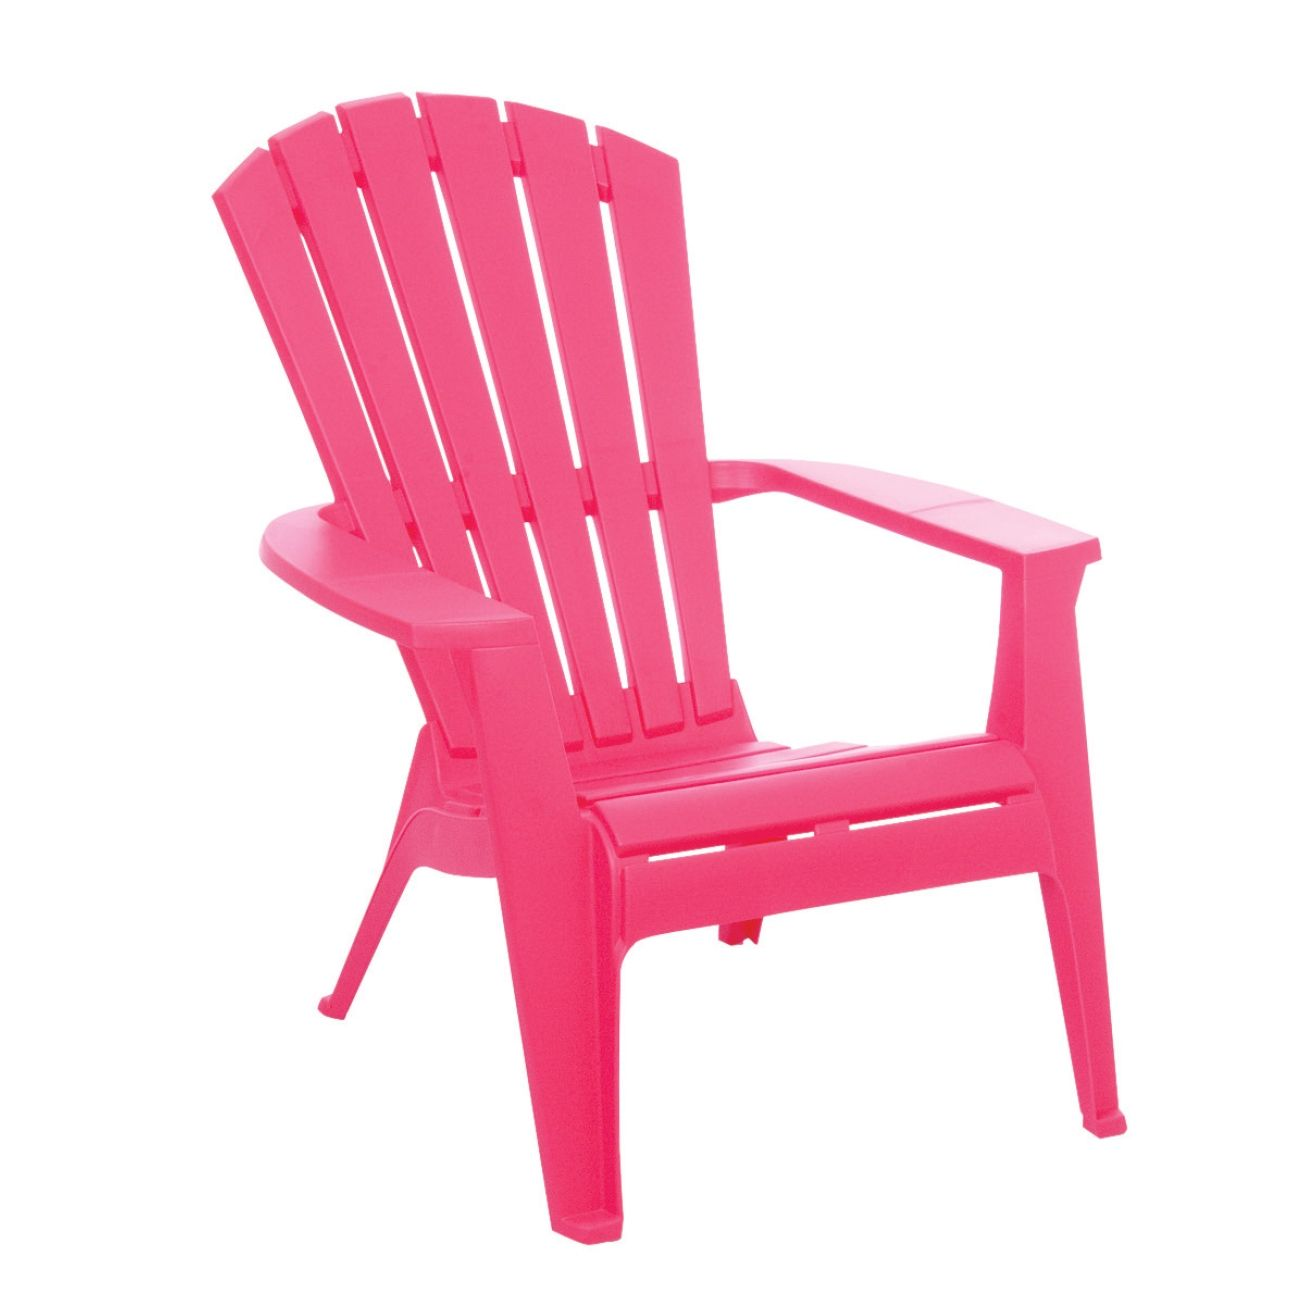 Ace Adirondack Chairs Floating Chair For Lake 24 99 Adams Stacking In Pink 8370 07